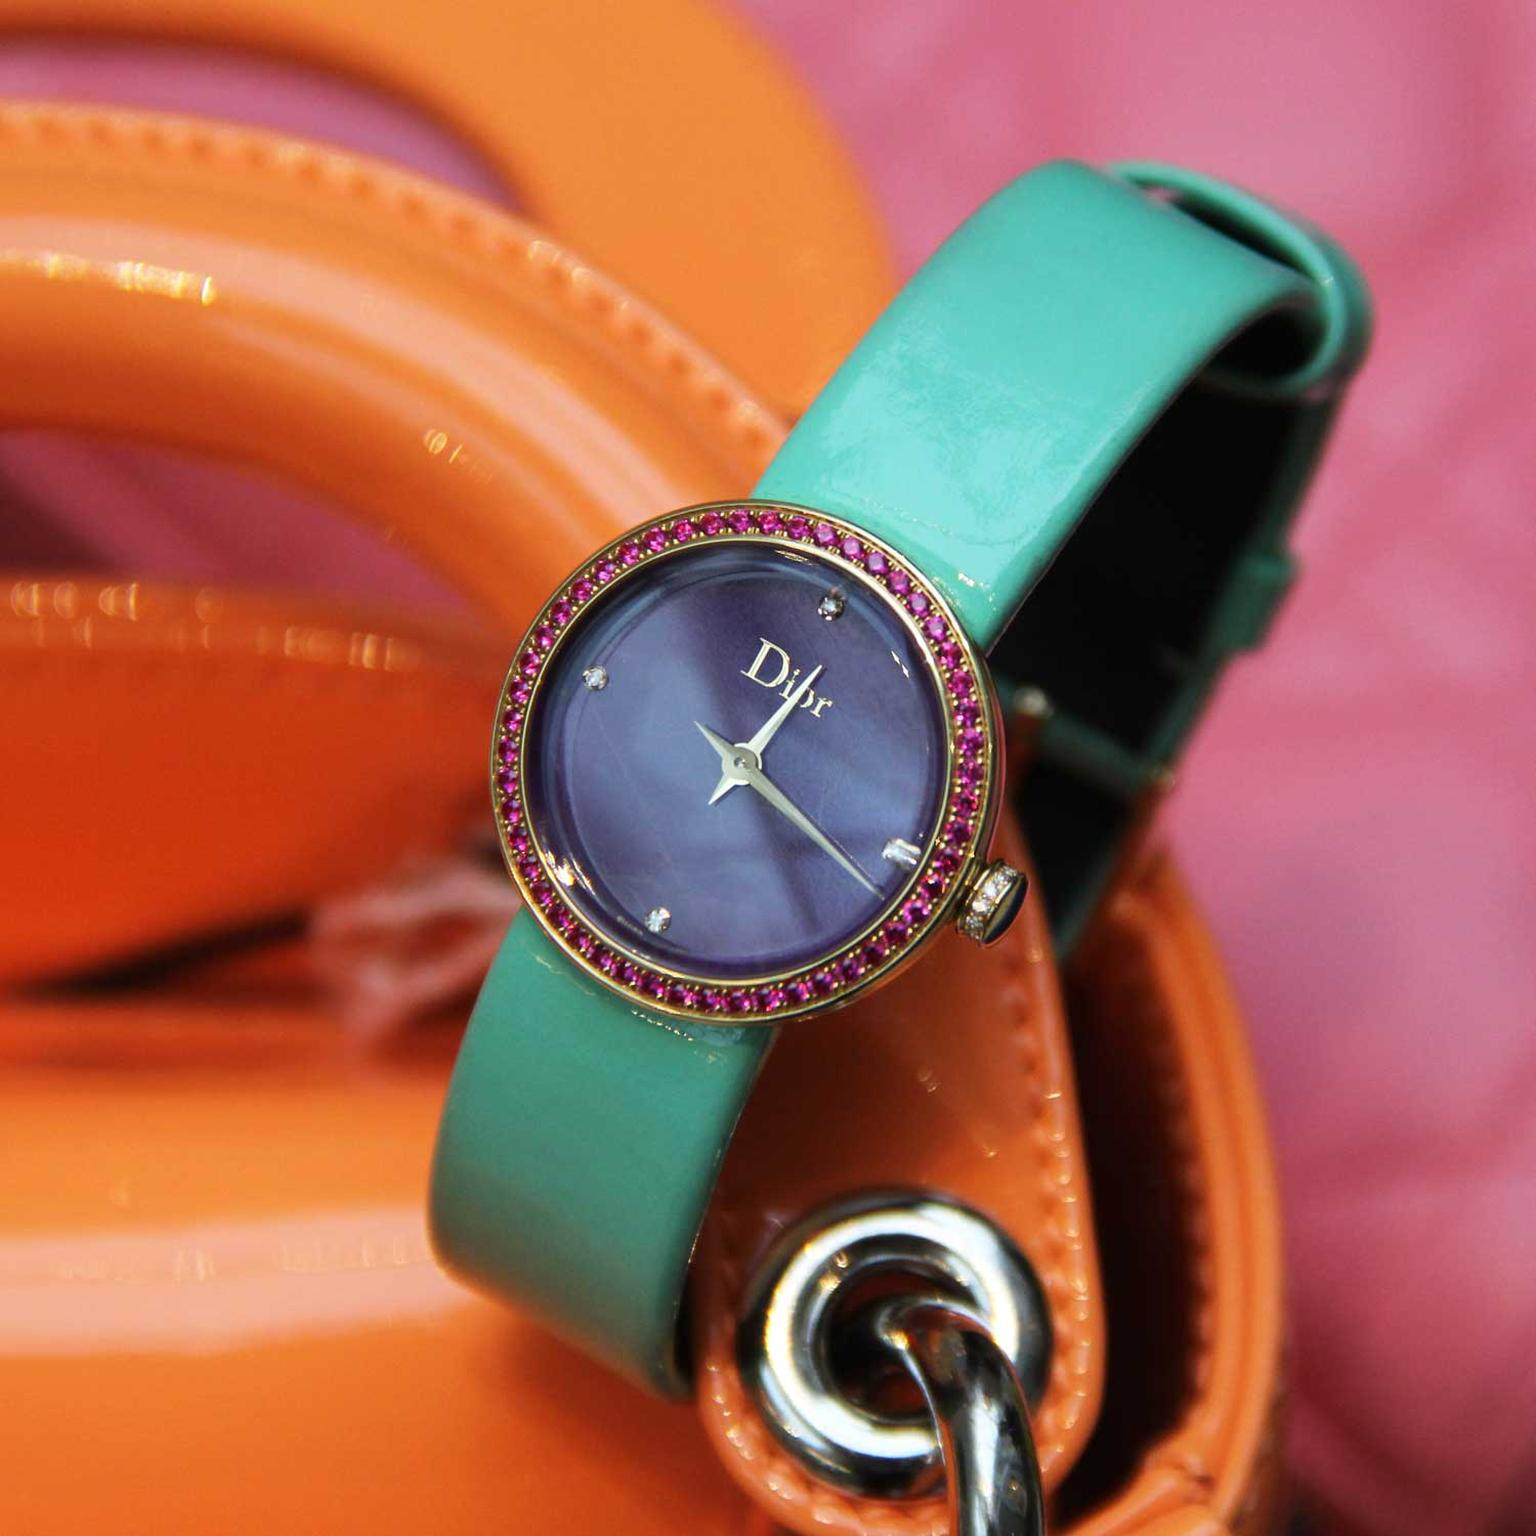 La D de Dior watch with sugilite dial and ruby bezel